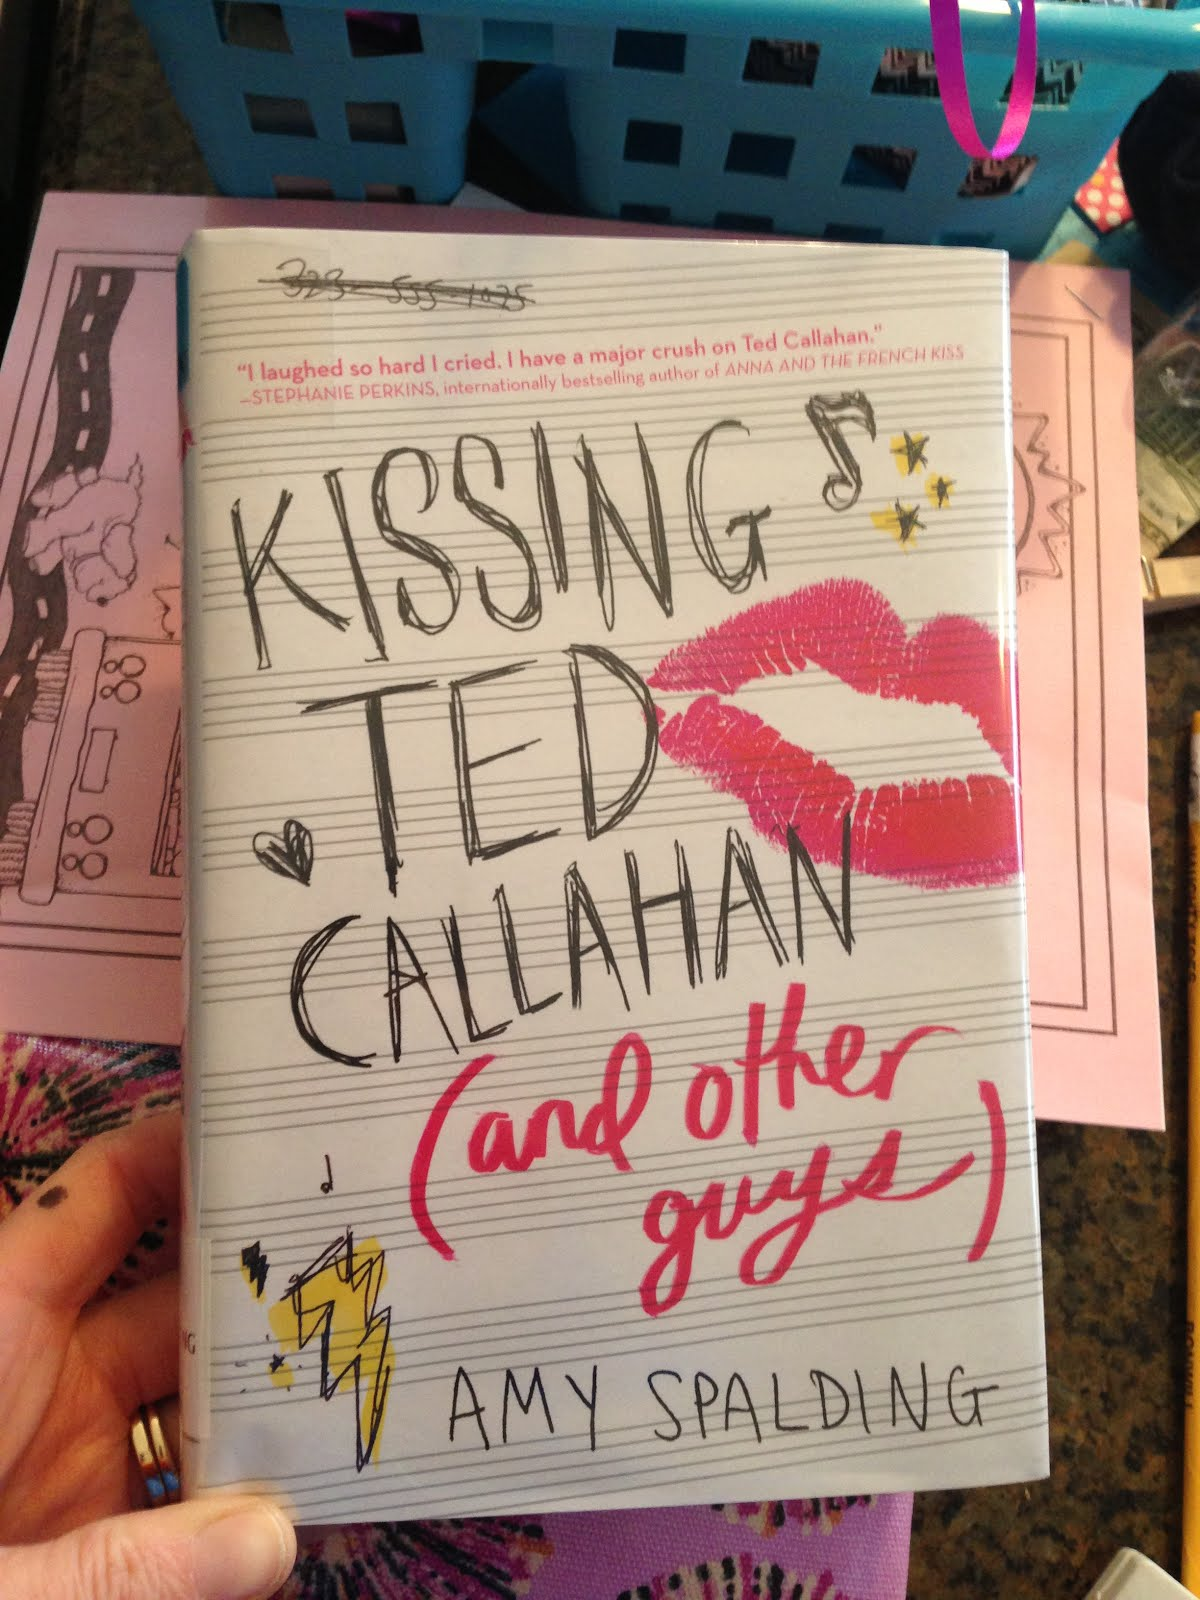 Kissing Ted Callahan -- Amy Spalding